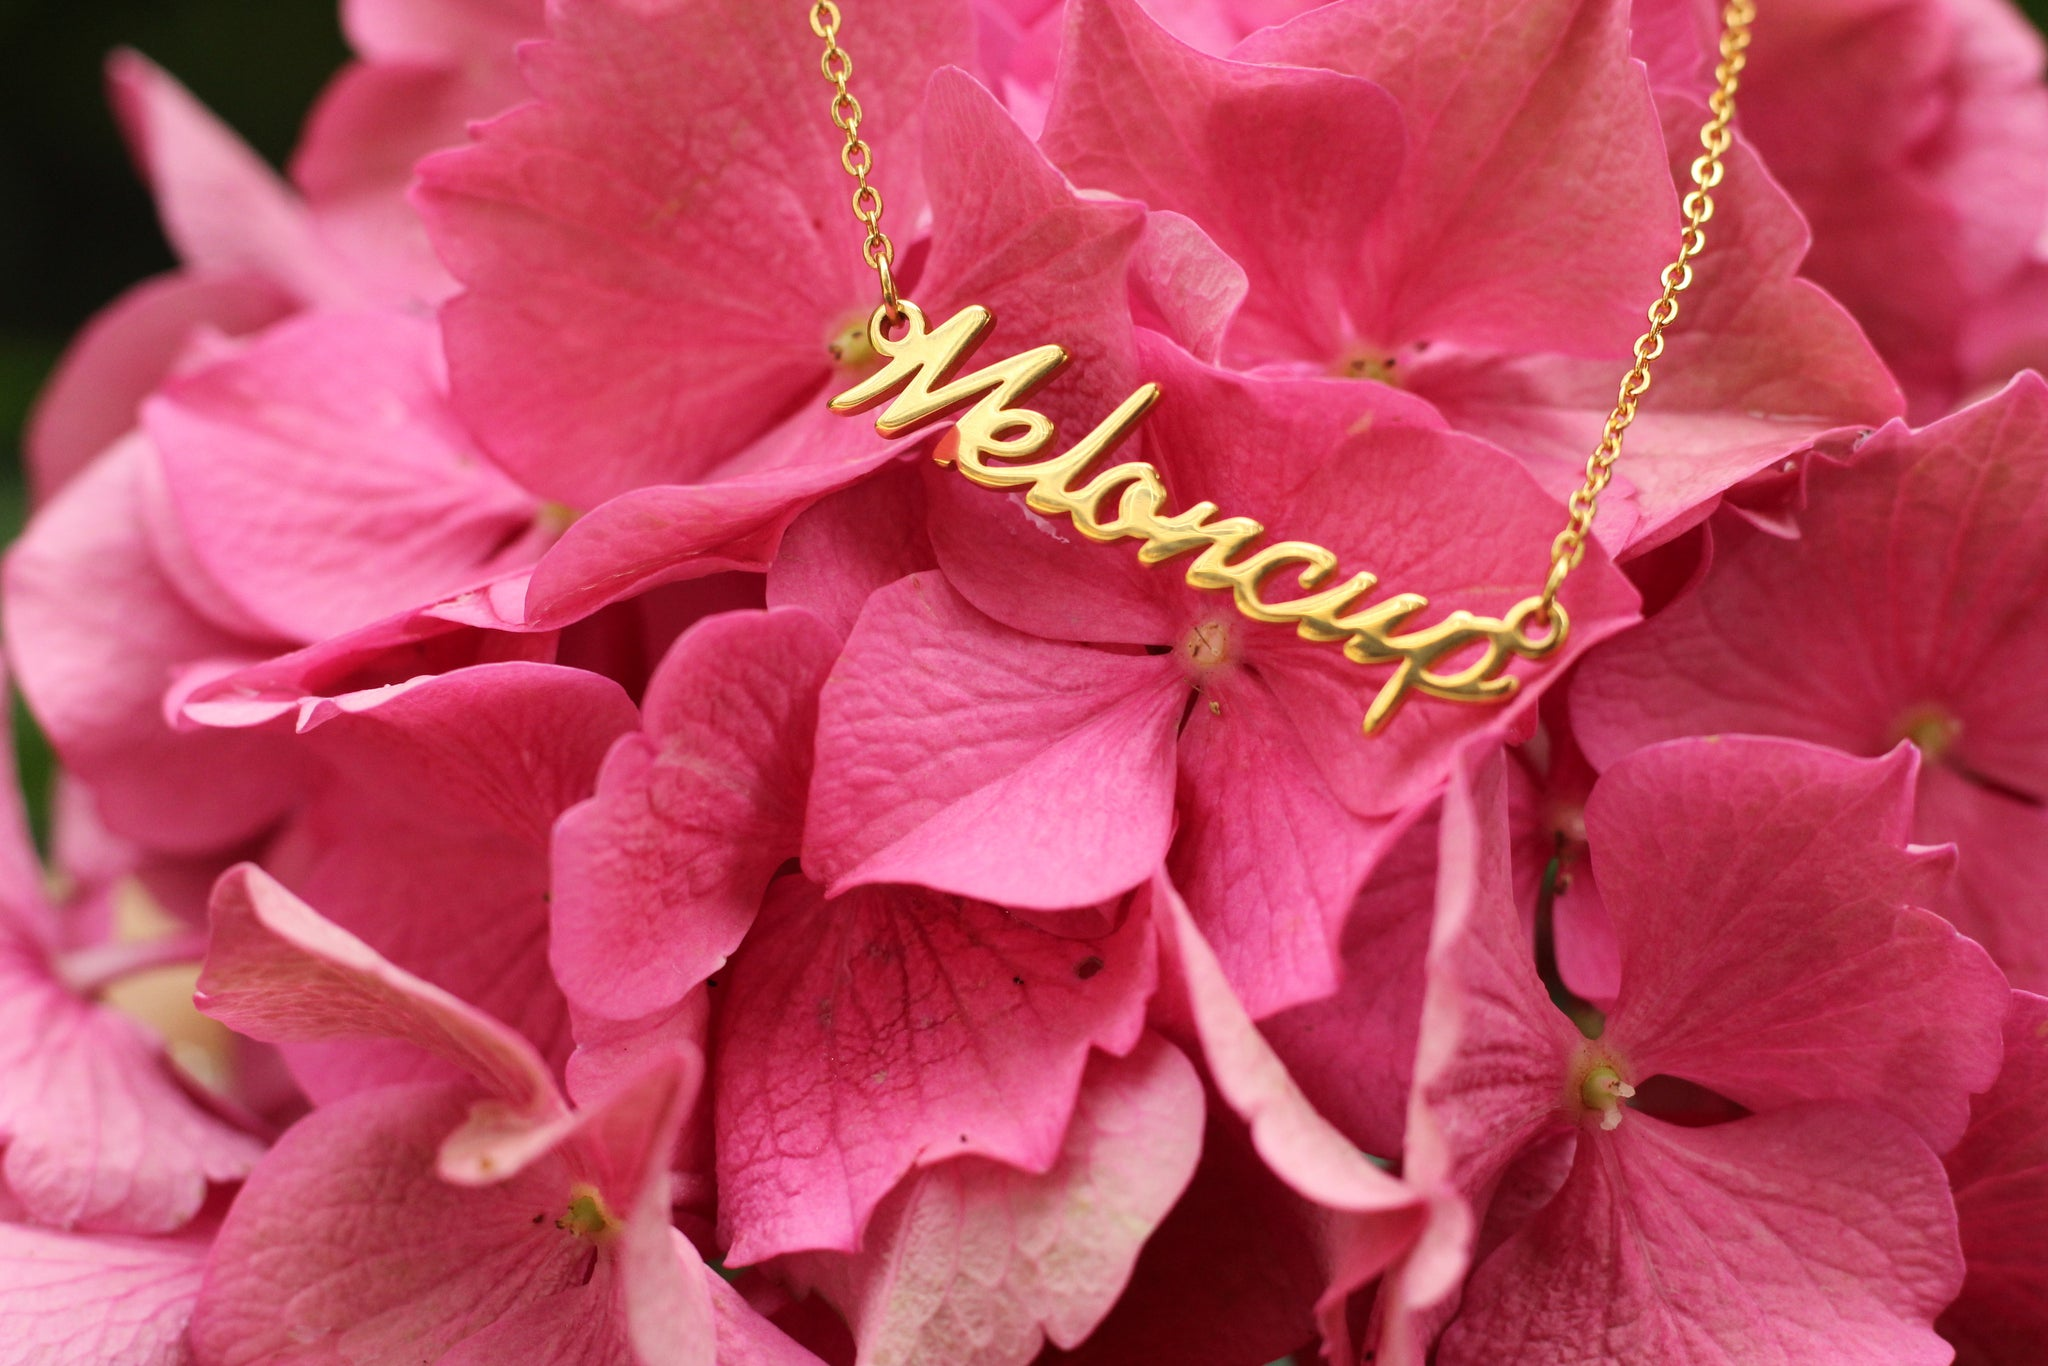 Meloncup Necklace